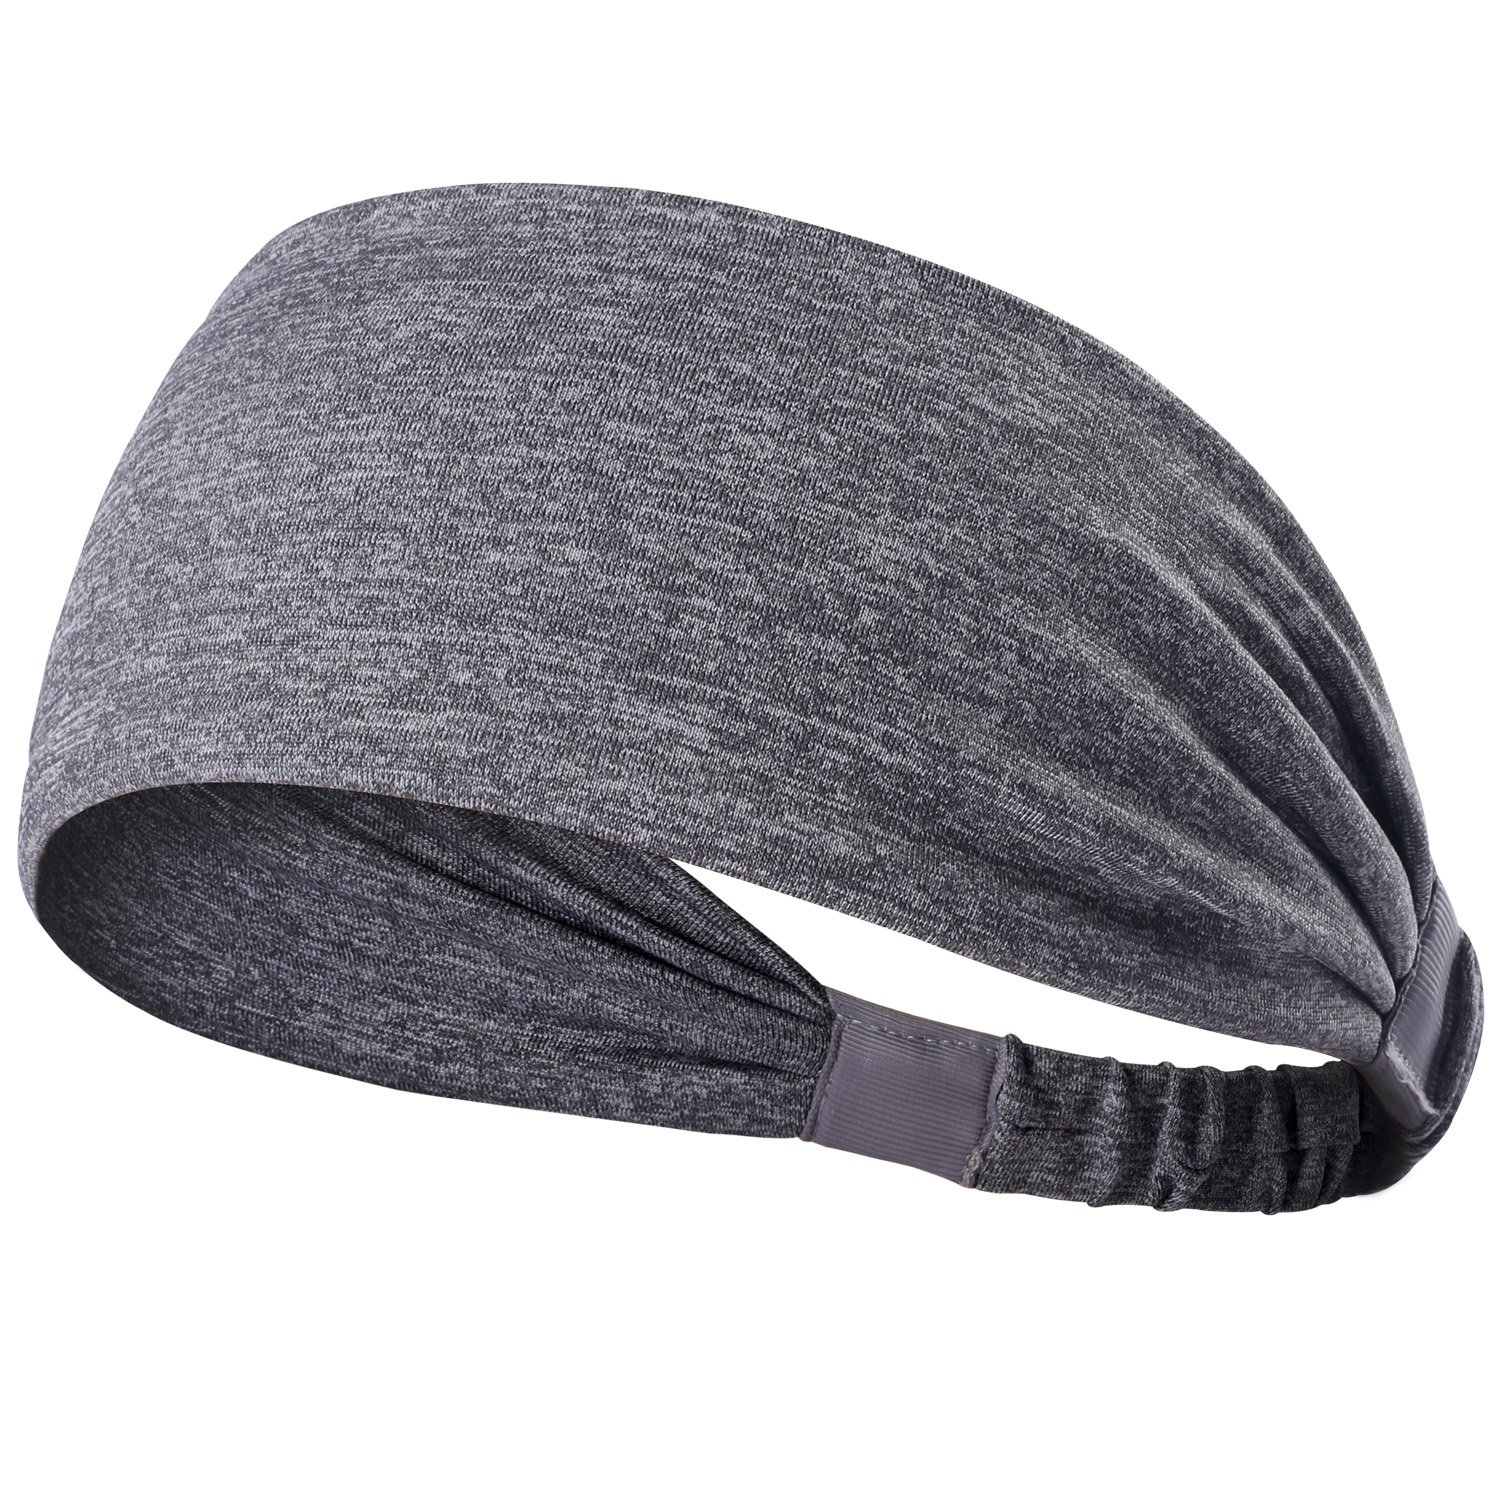 Calbeing Moisture Wicking Headband for Womens - Workout Sweat Band, Soft, Comfortable, Perfect for Working 75614896